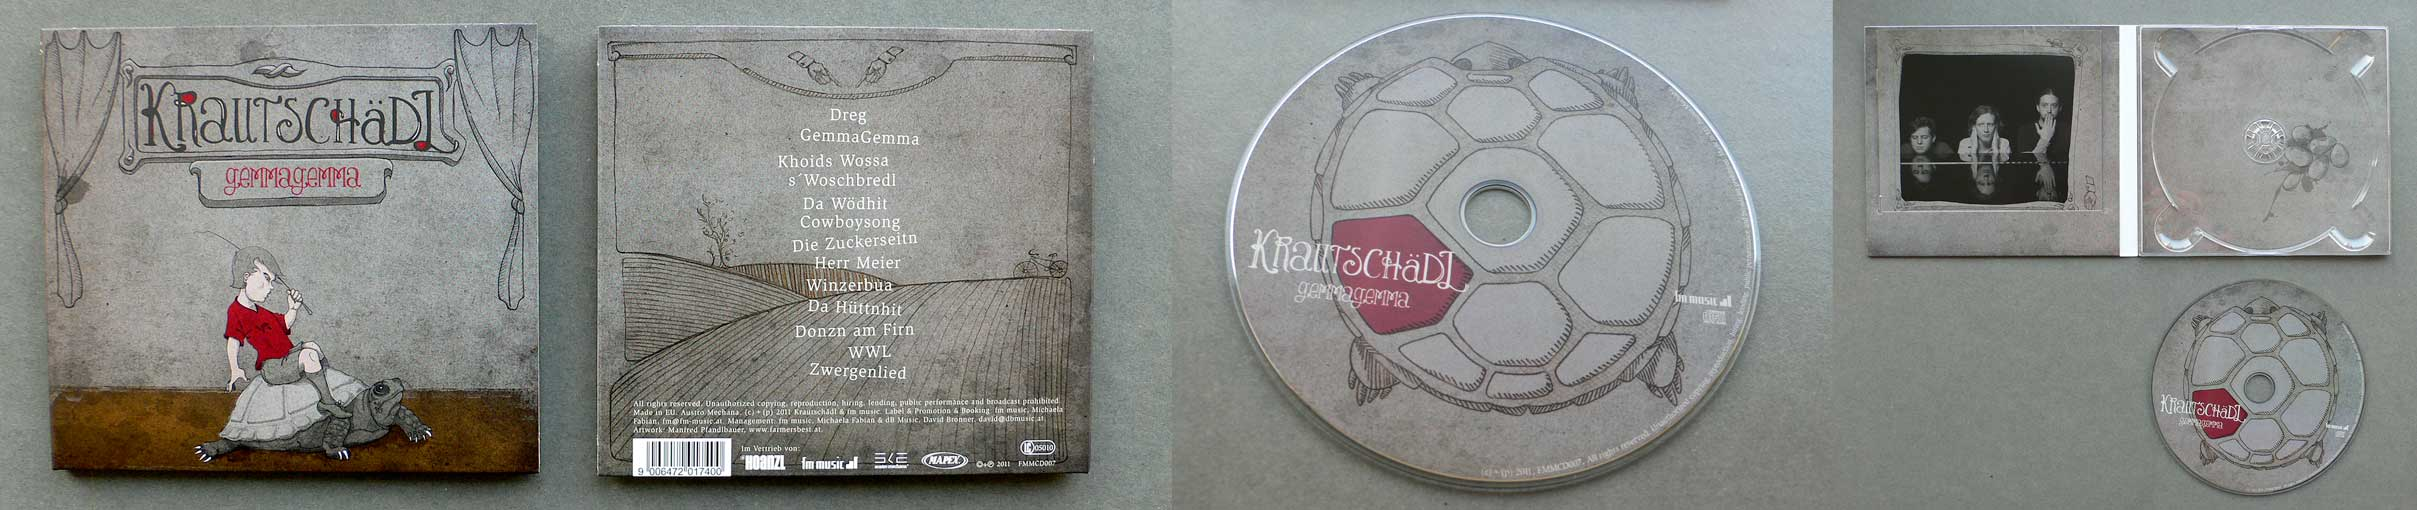 cd artwork and illustrations / krautschädl